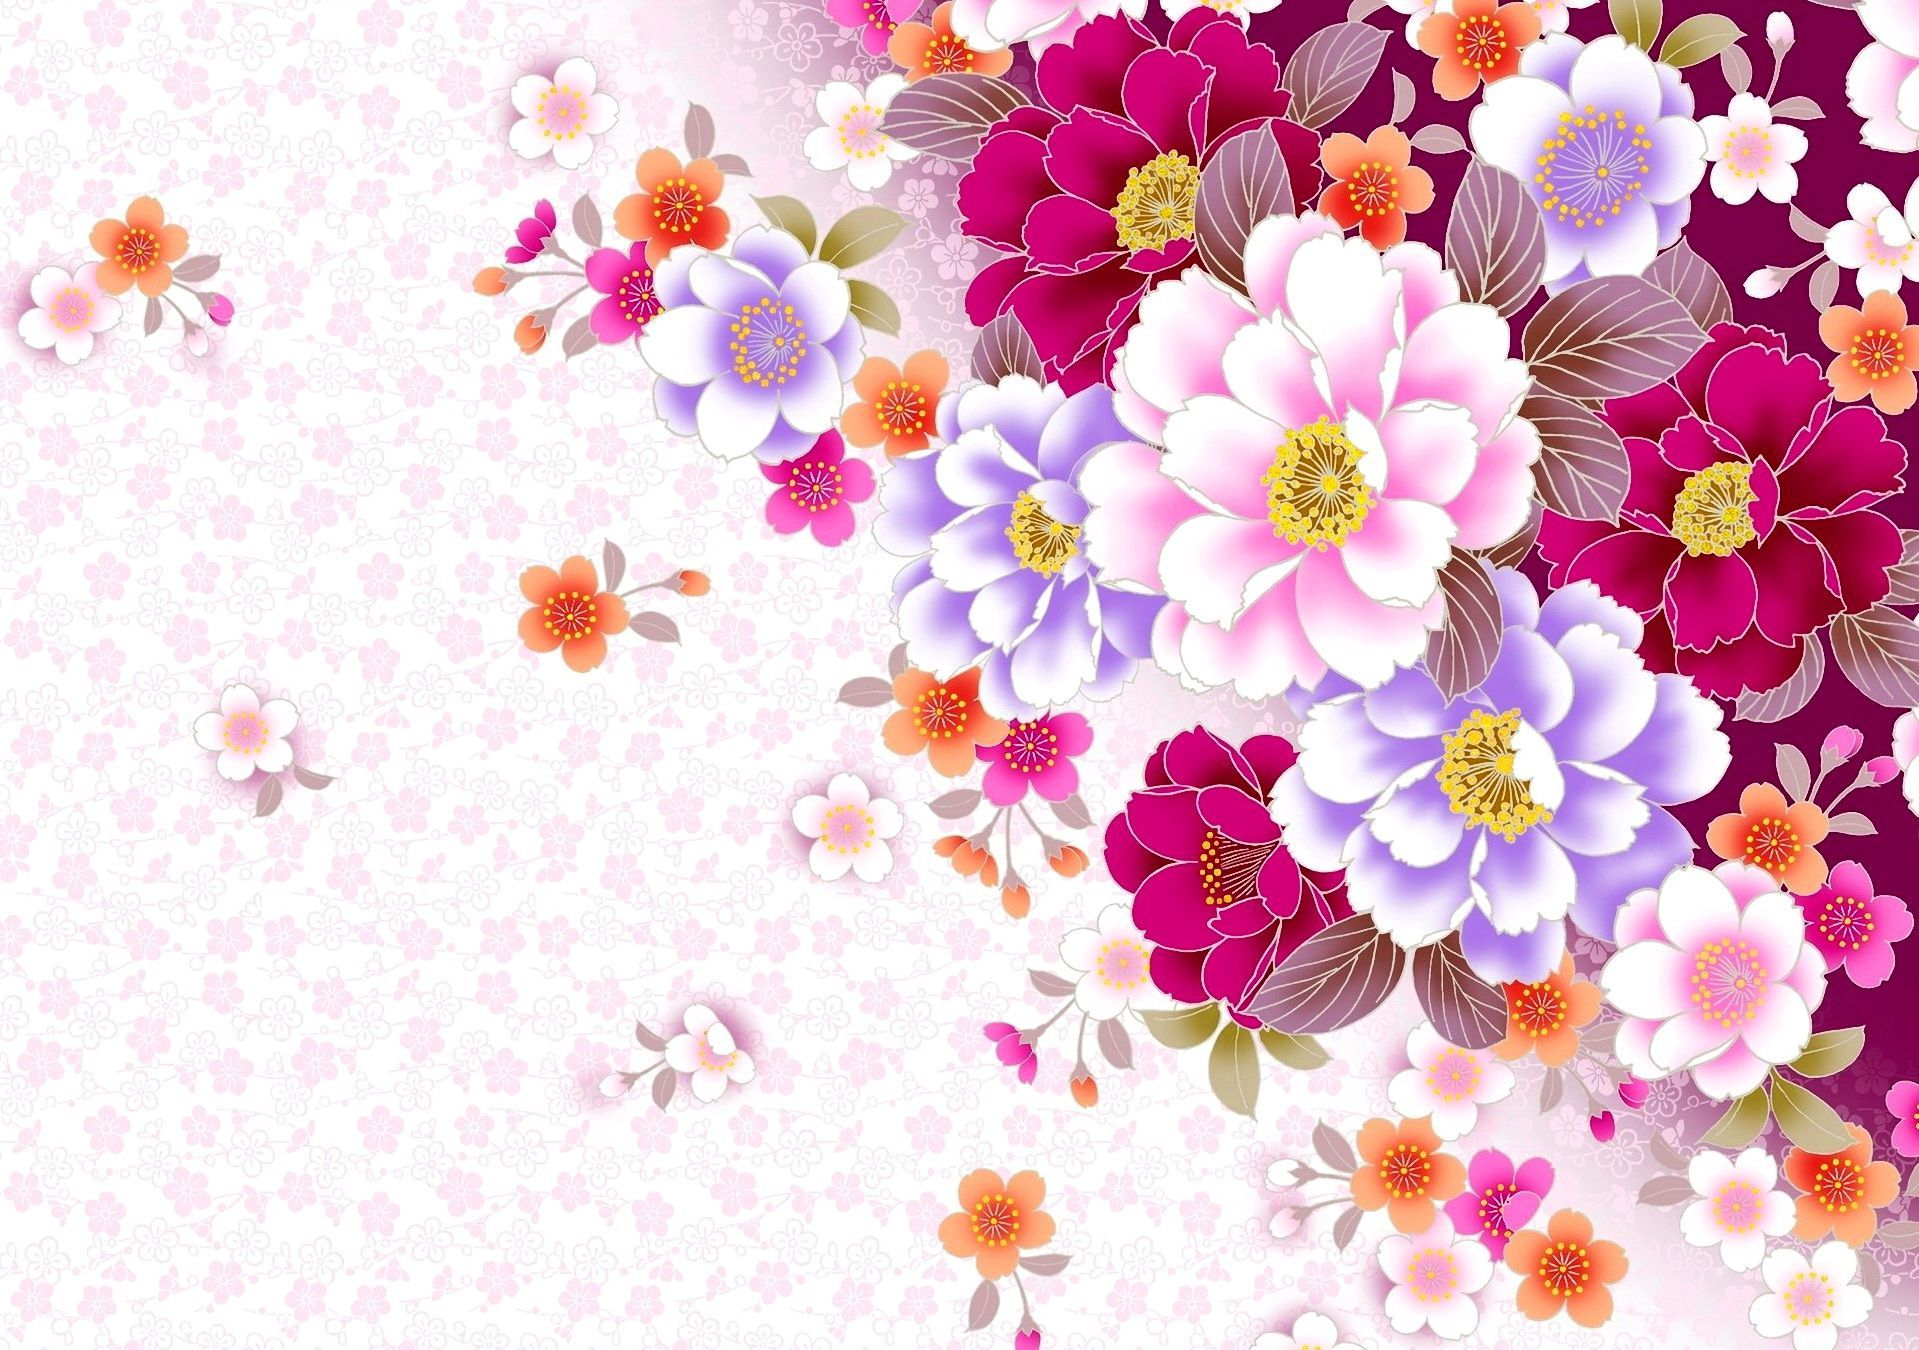 Wonderful Wallpaper Laptop Pinterest-Desktop-Flower-Backgrounds-002 Picture_251258.jpg